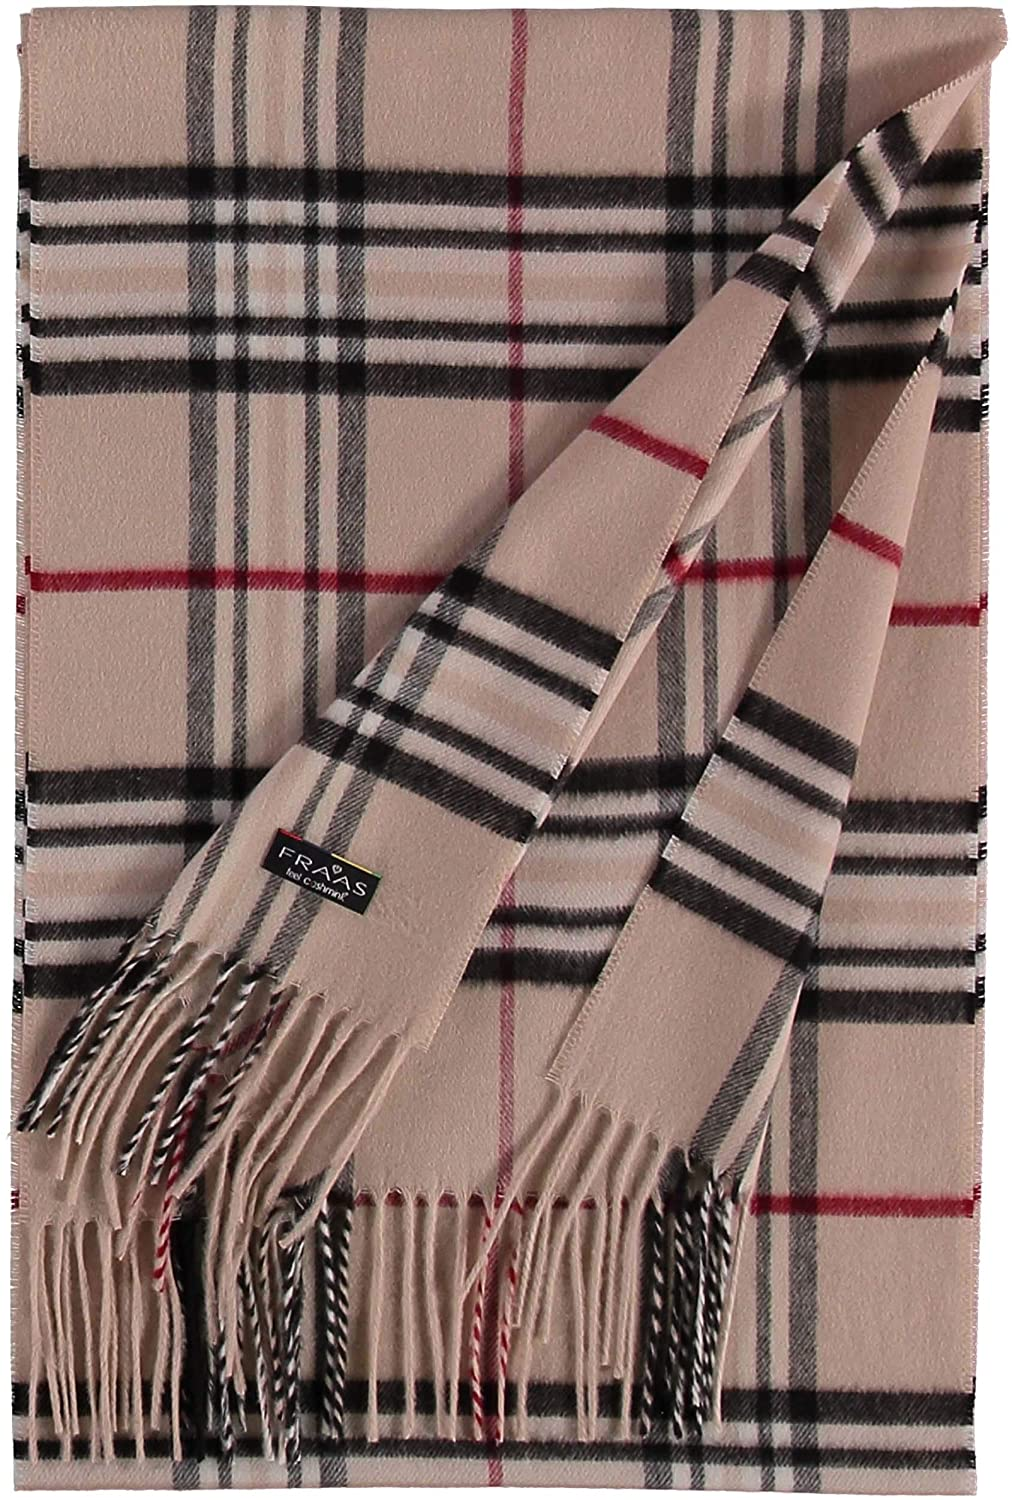 FRAAS Schal aus reinem Cashmink f/ür Damen /& Herren XXL-Schal weicher als Kaschmir The Plaid Made in Germany Perfekt f/ür die /Übergangszeit